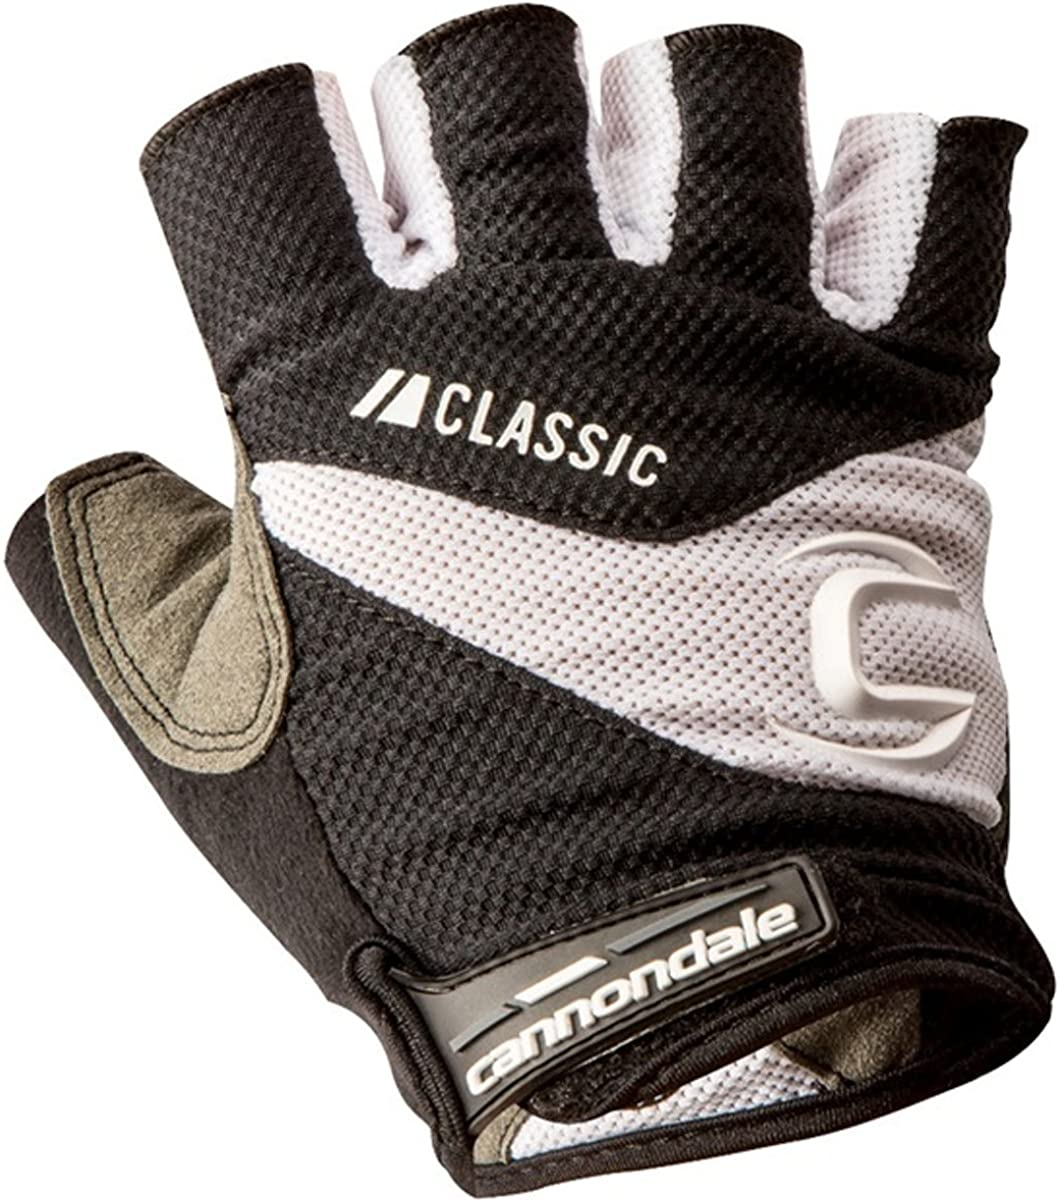 Cannondale Women/'s Endurance Race Gel Gloves Size Small New